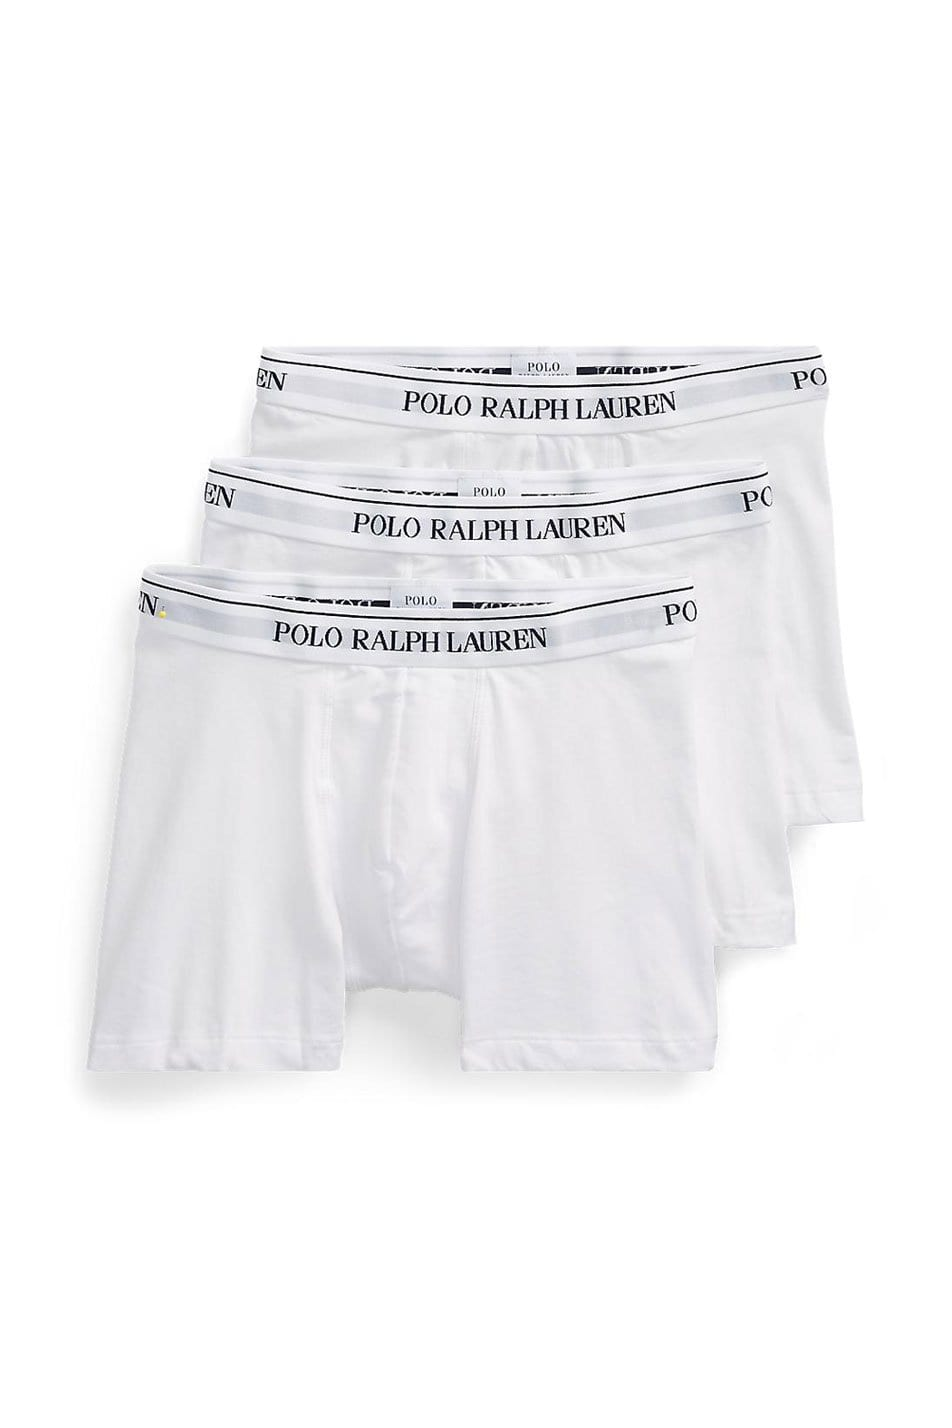 Polo Ralph Lauren 3 Pack Boxer Brief